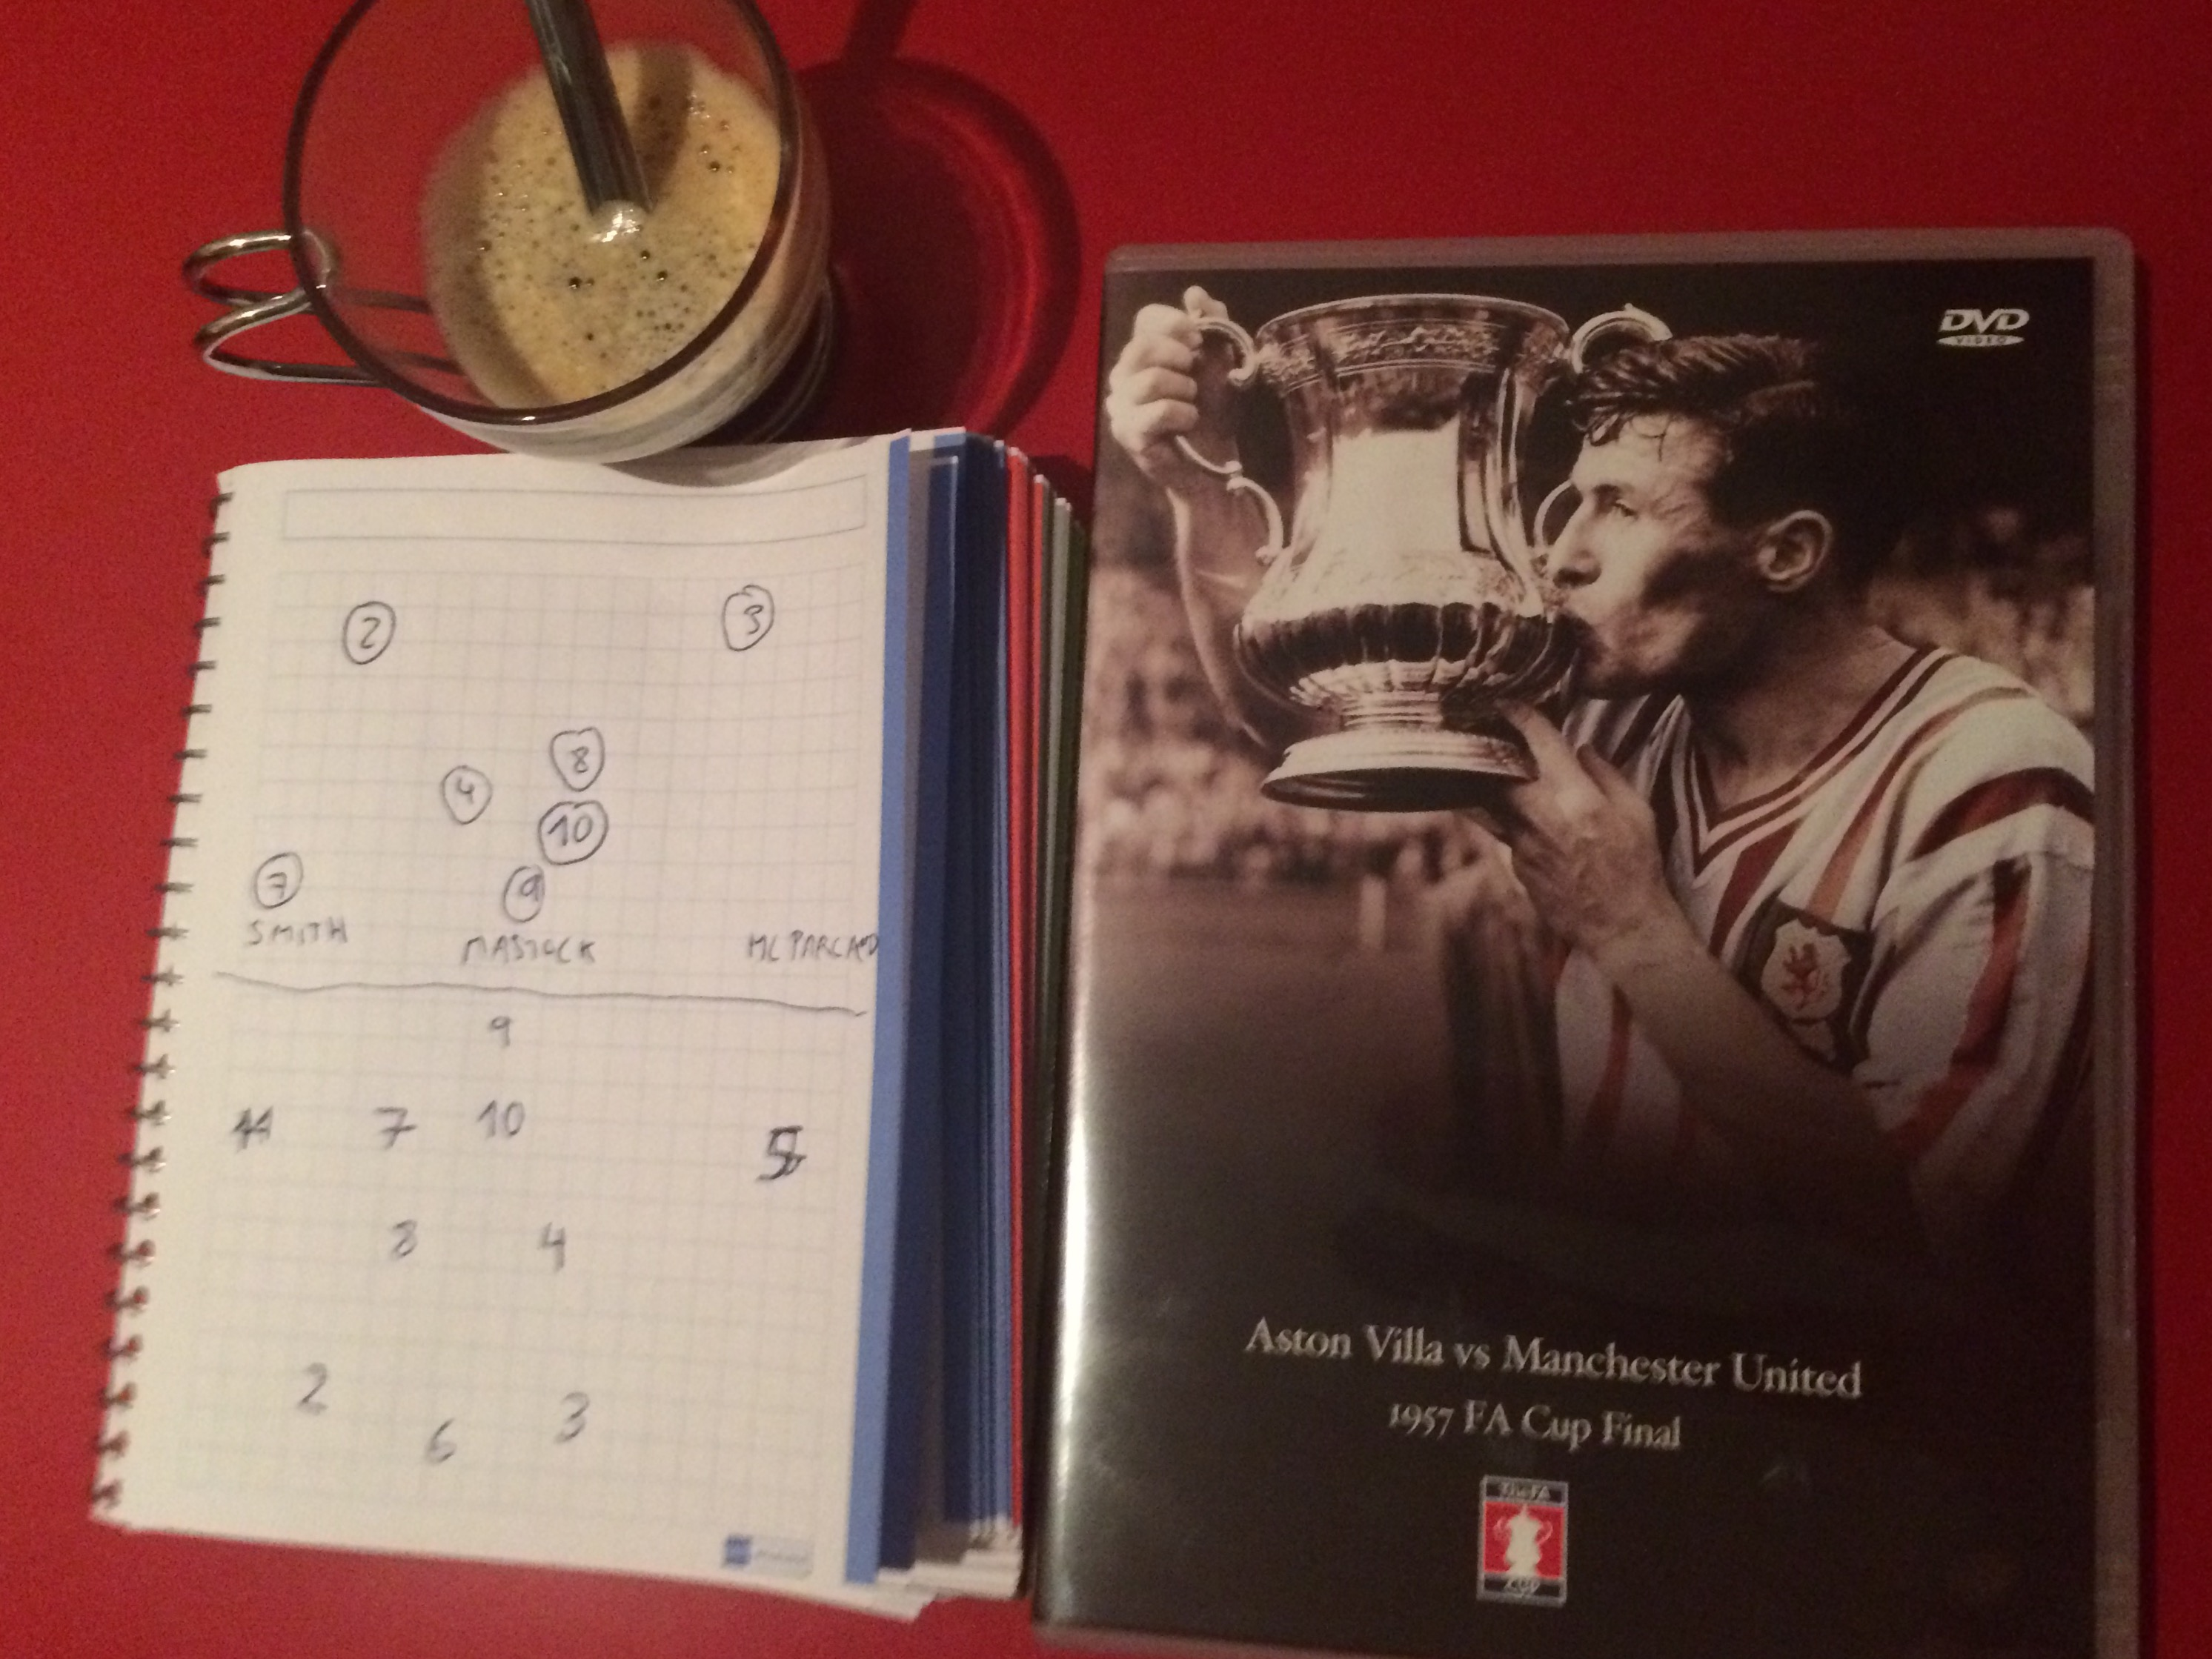 Final FA Cup 1957 Aston Villa Manchester United